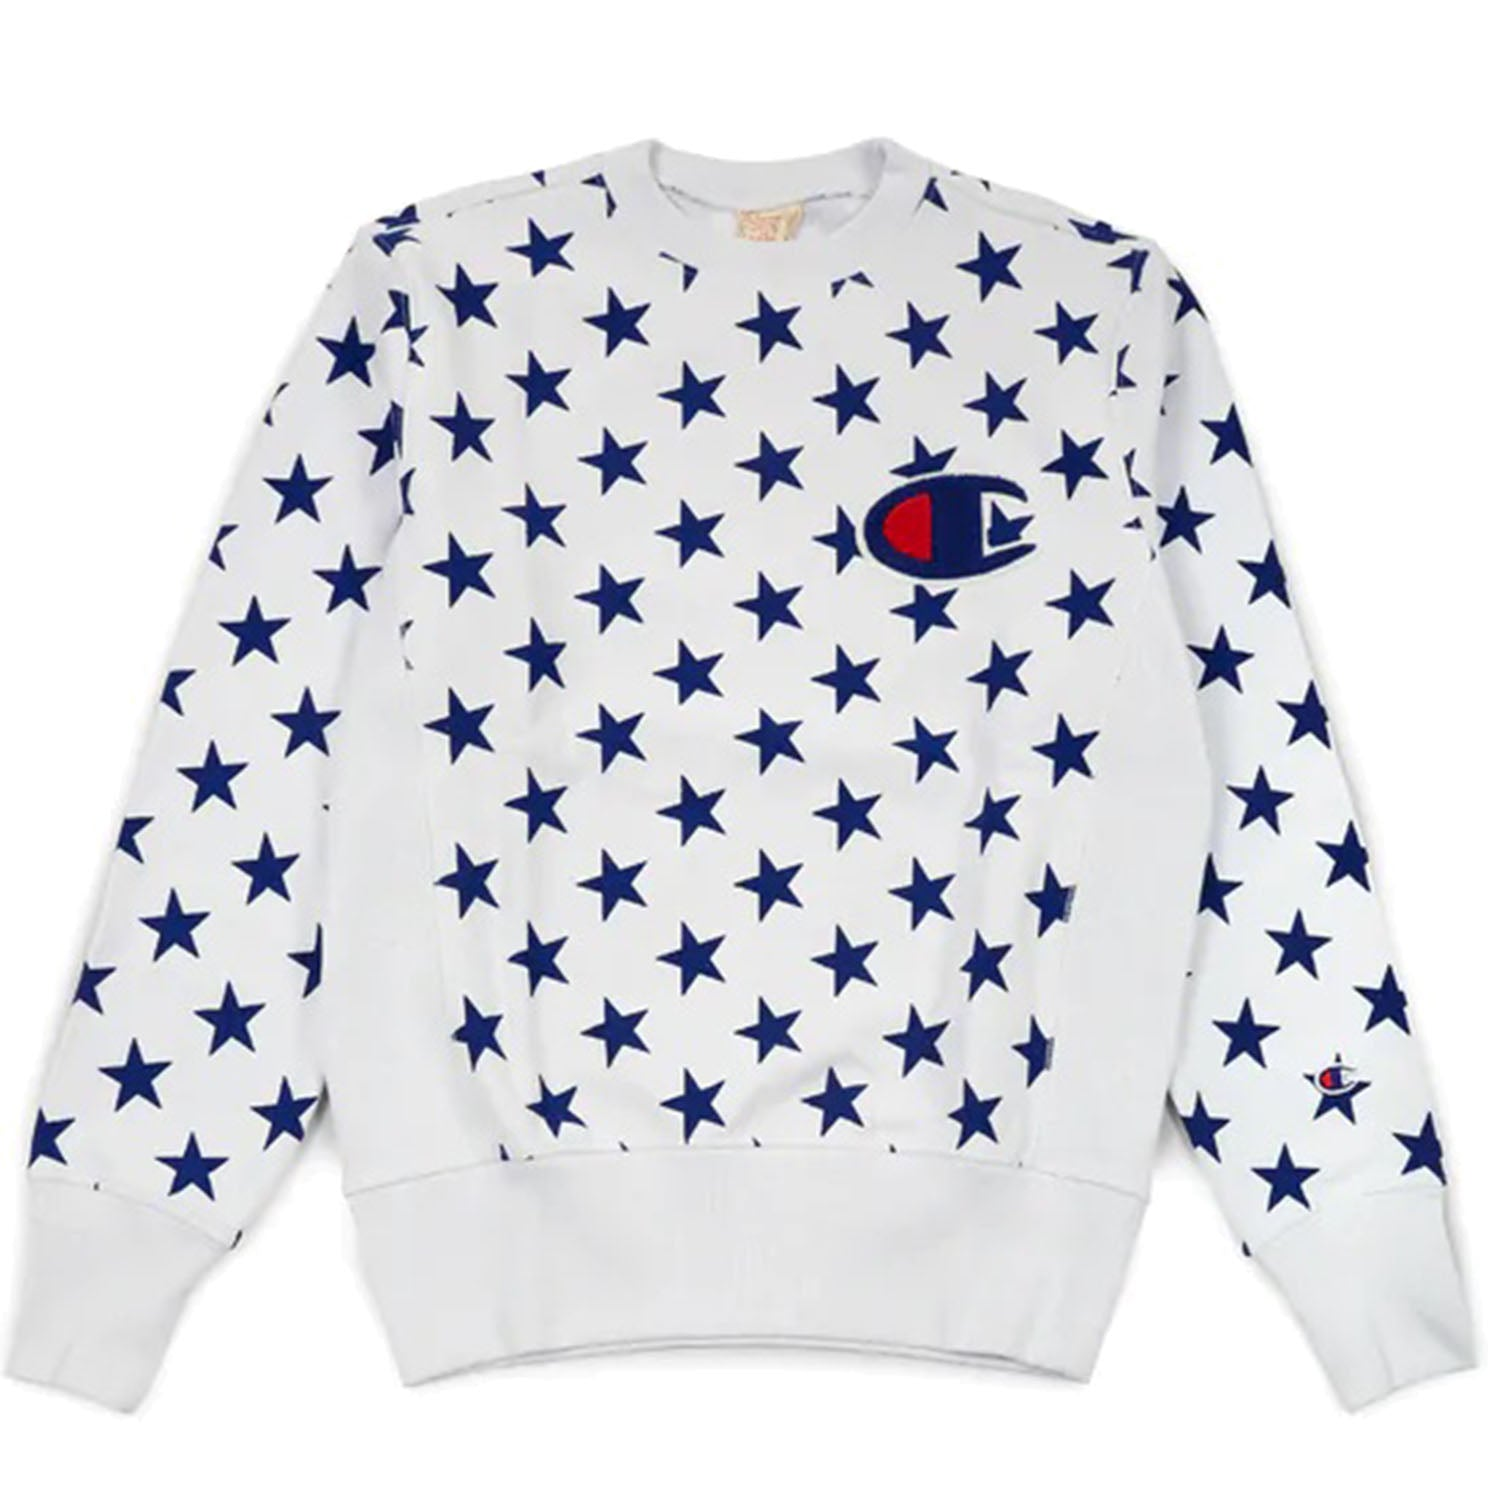 Champion All Over Star Print White Sweatshirt